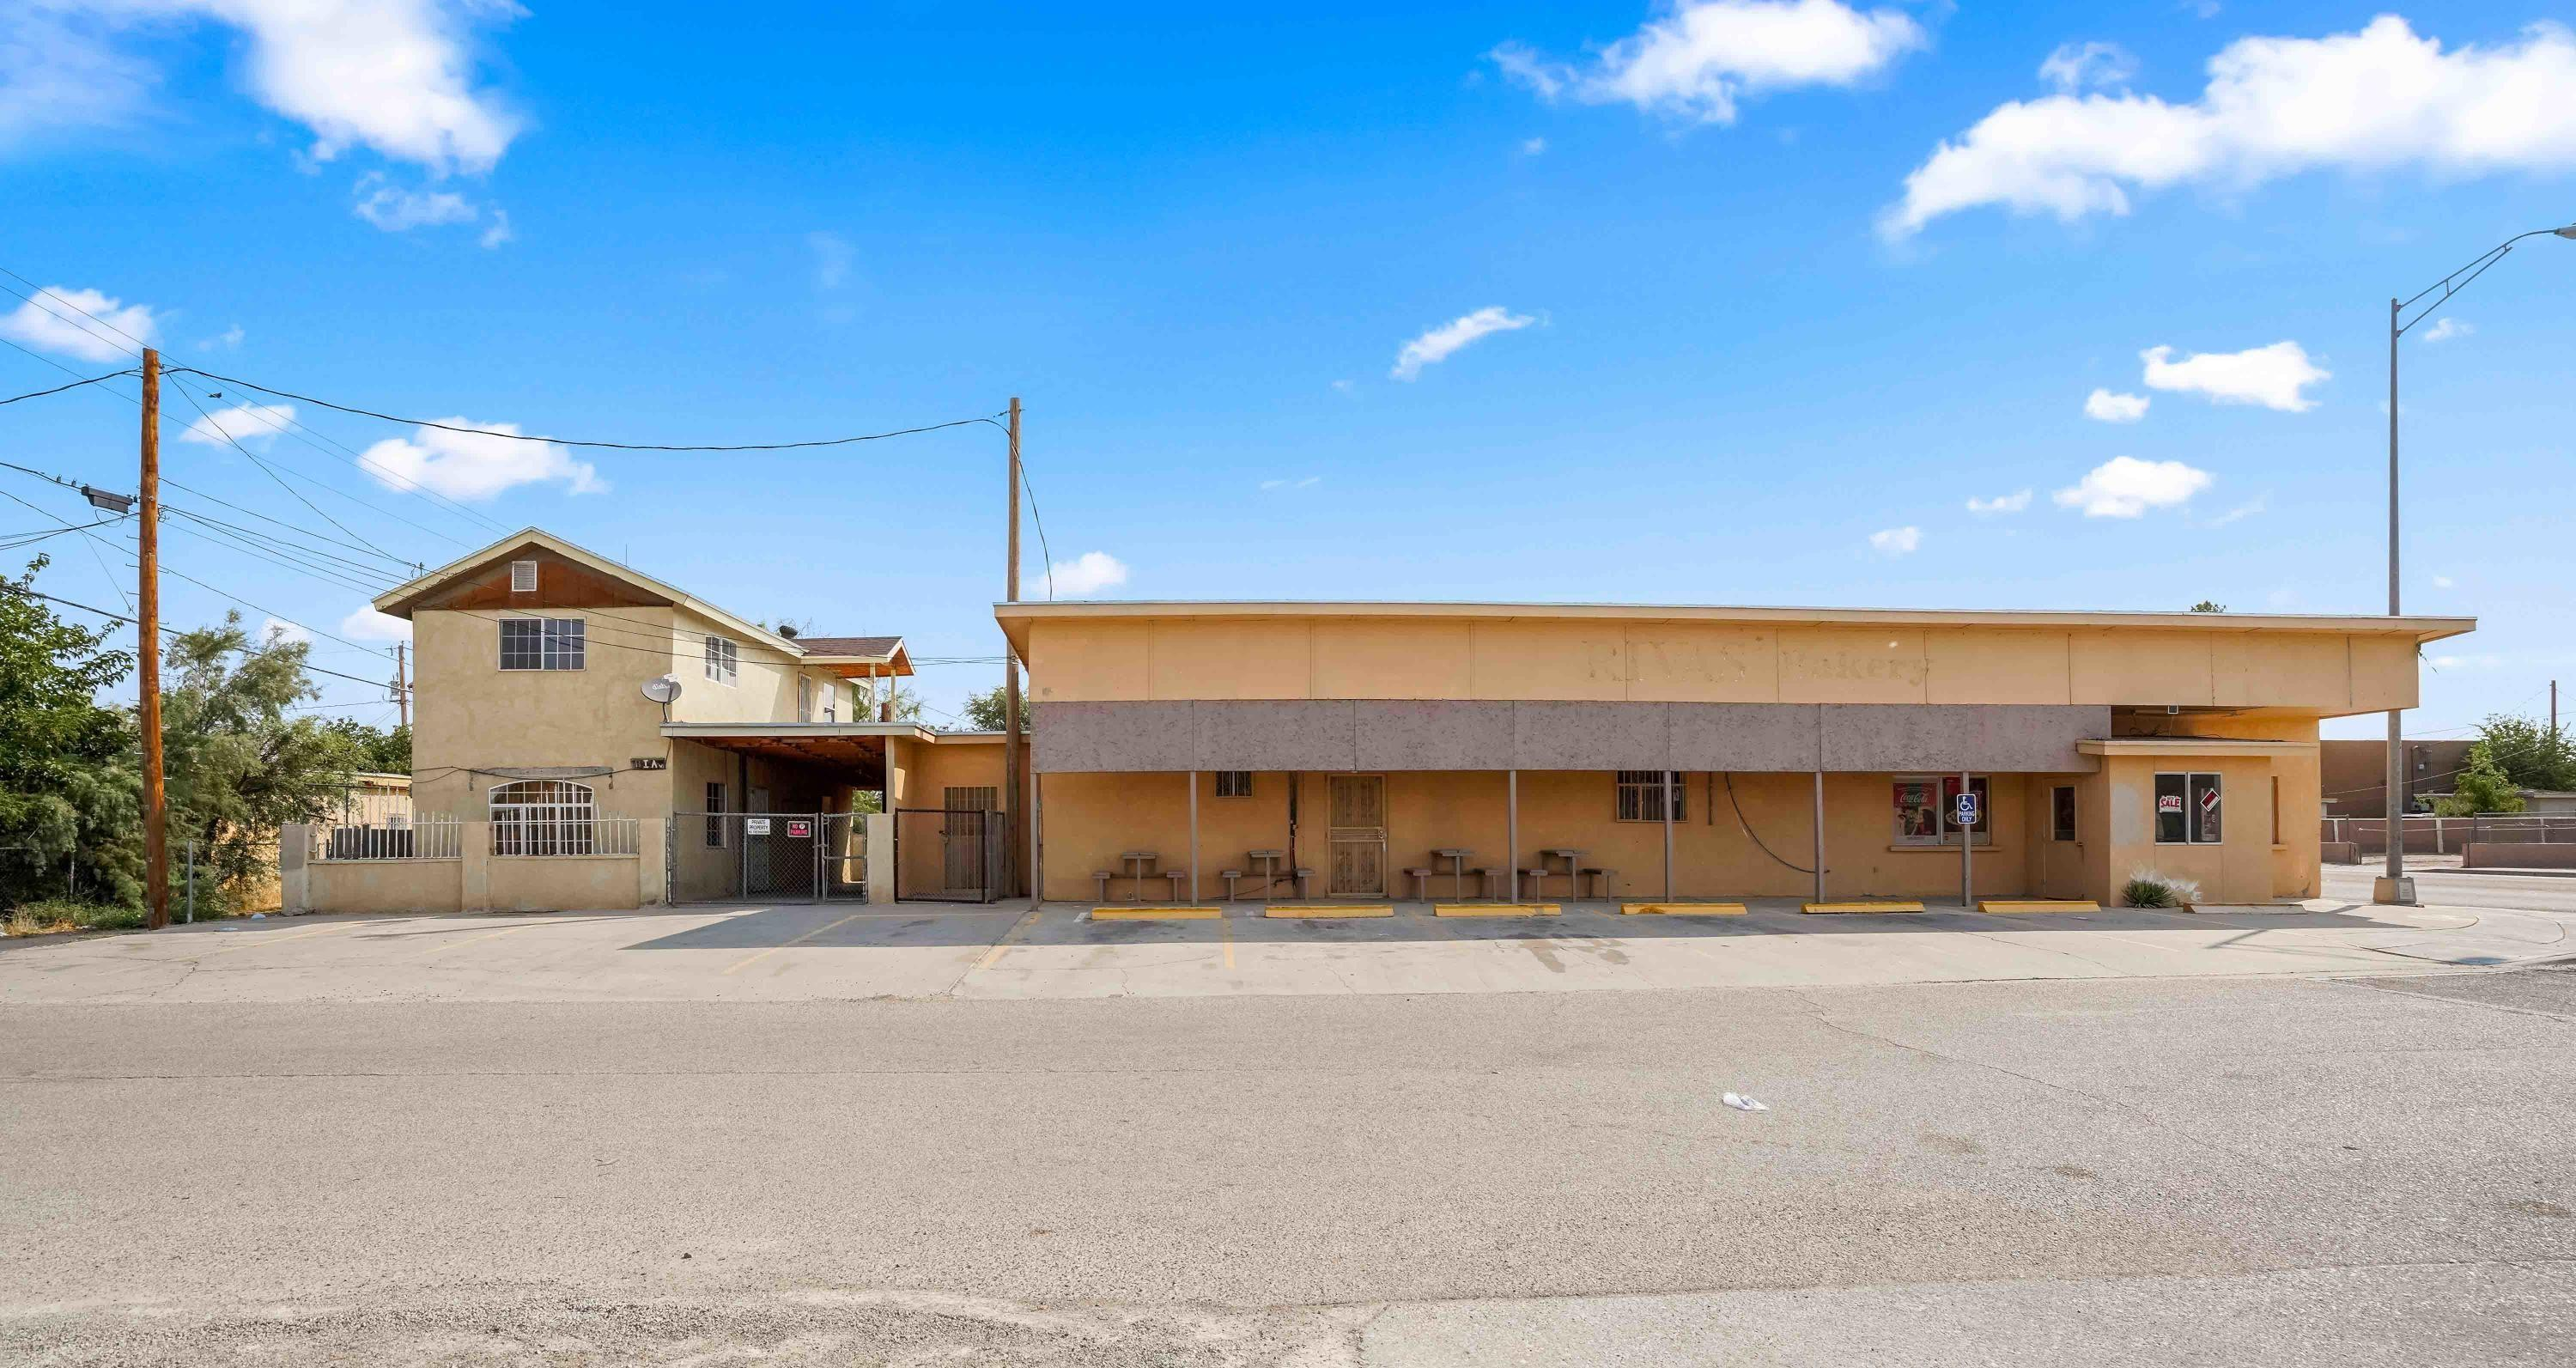 1001 FABENS Road, Fabens, Texas 79838, ,Commercial,For sale,FABENS,844043